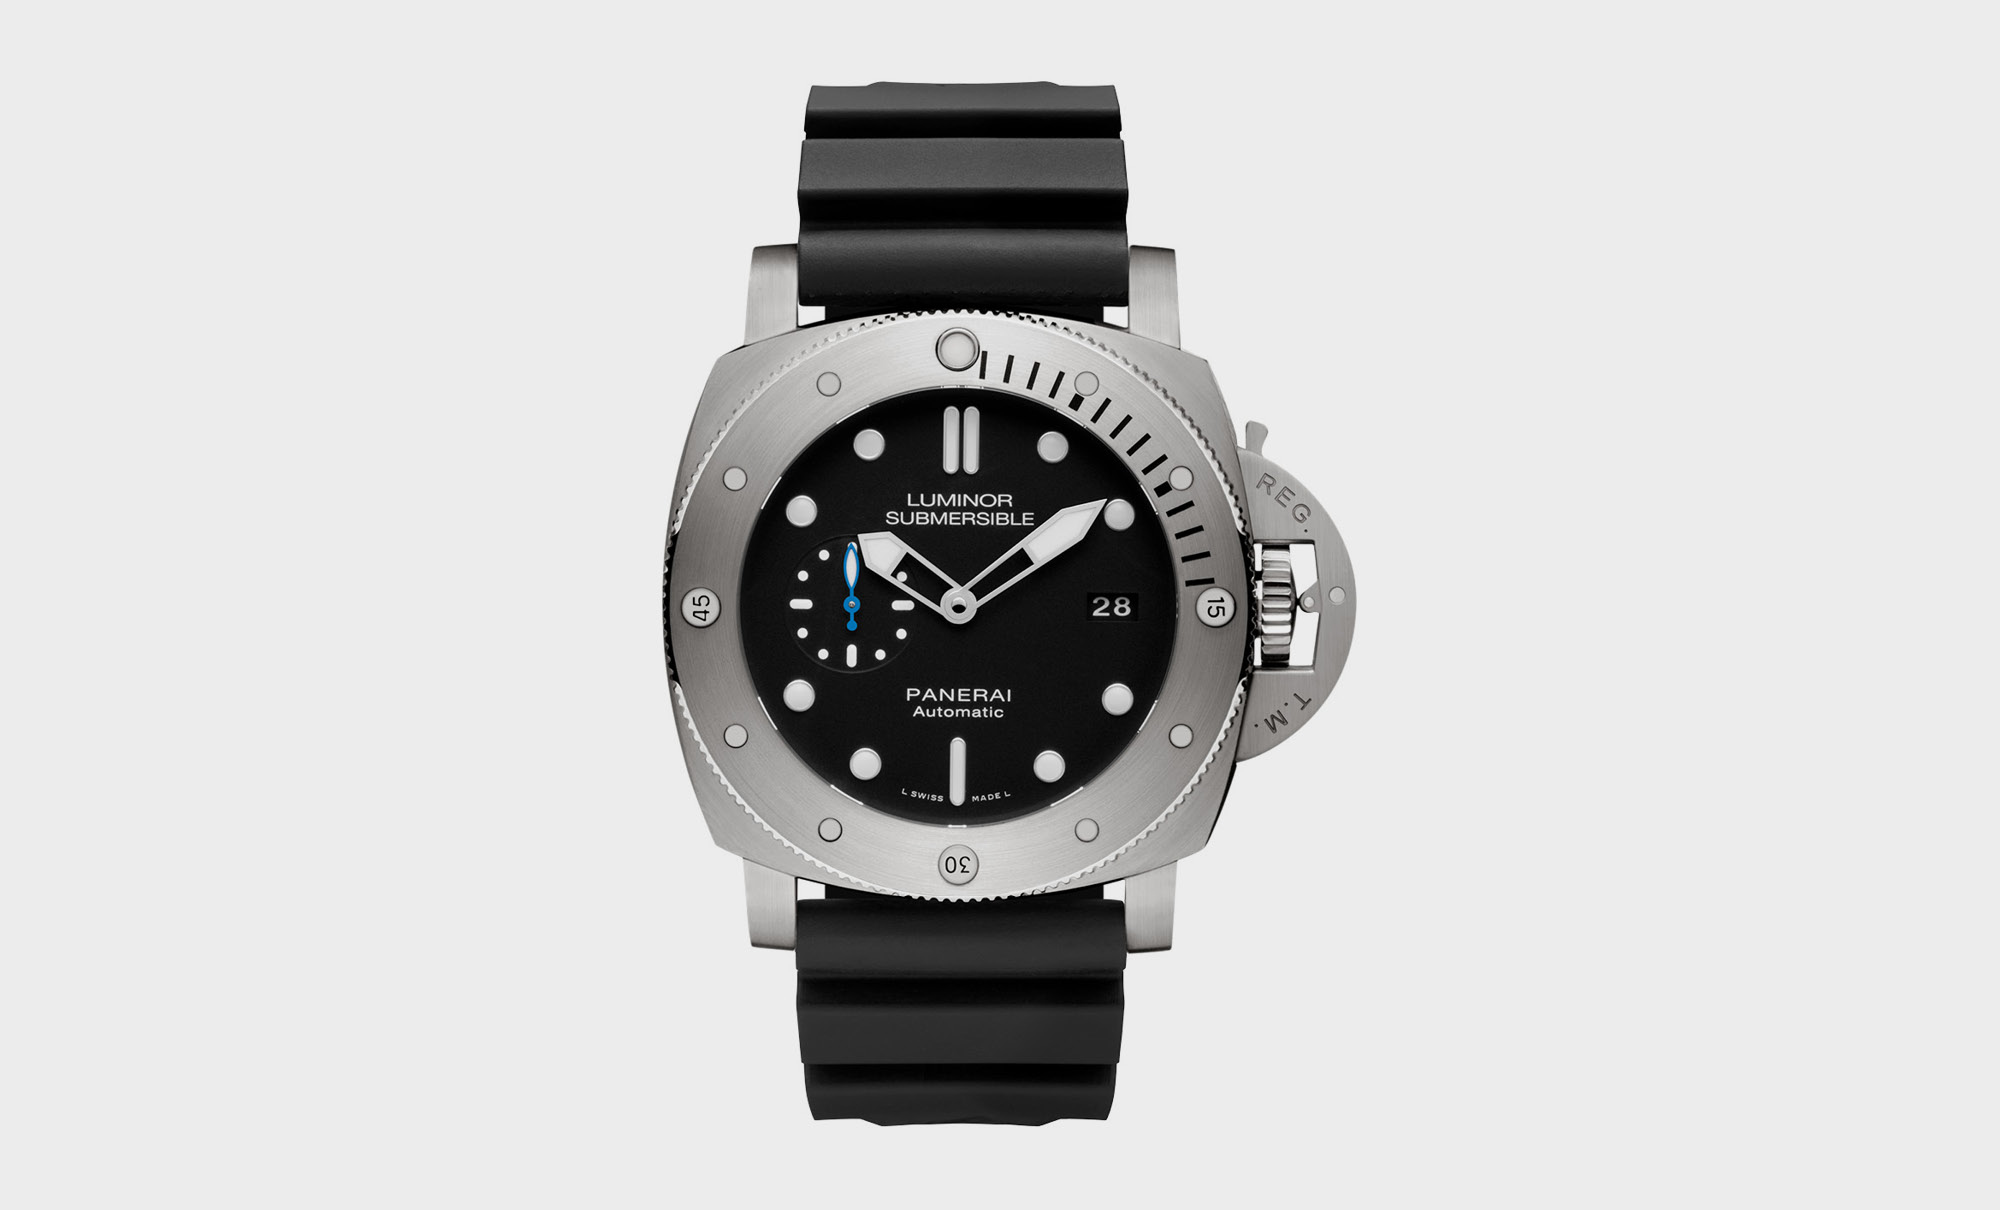 Panerai Luminor Submersible, £7,800